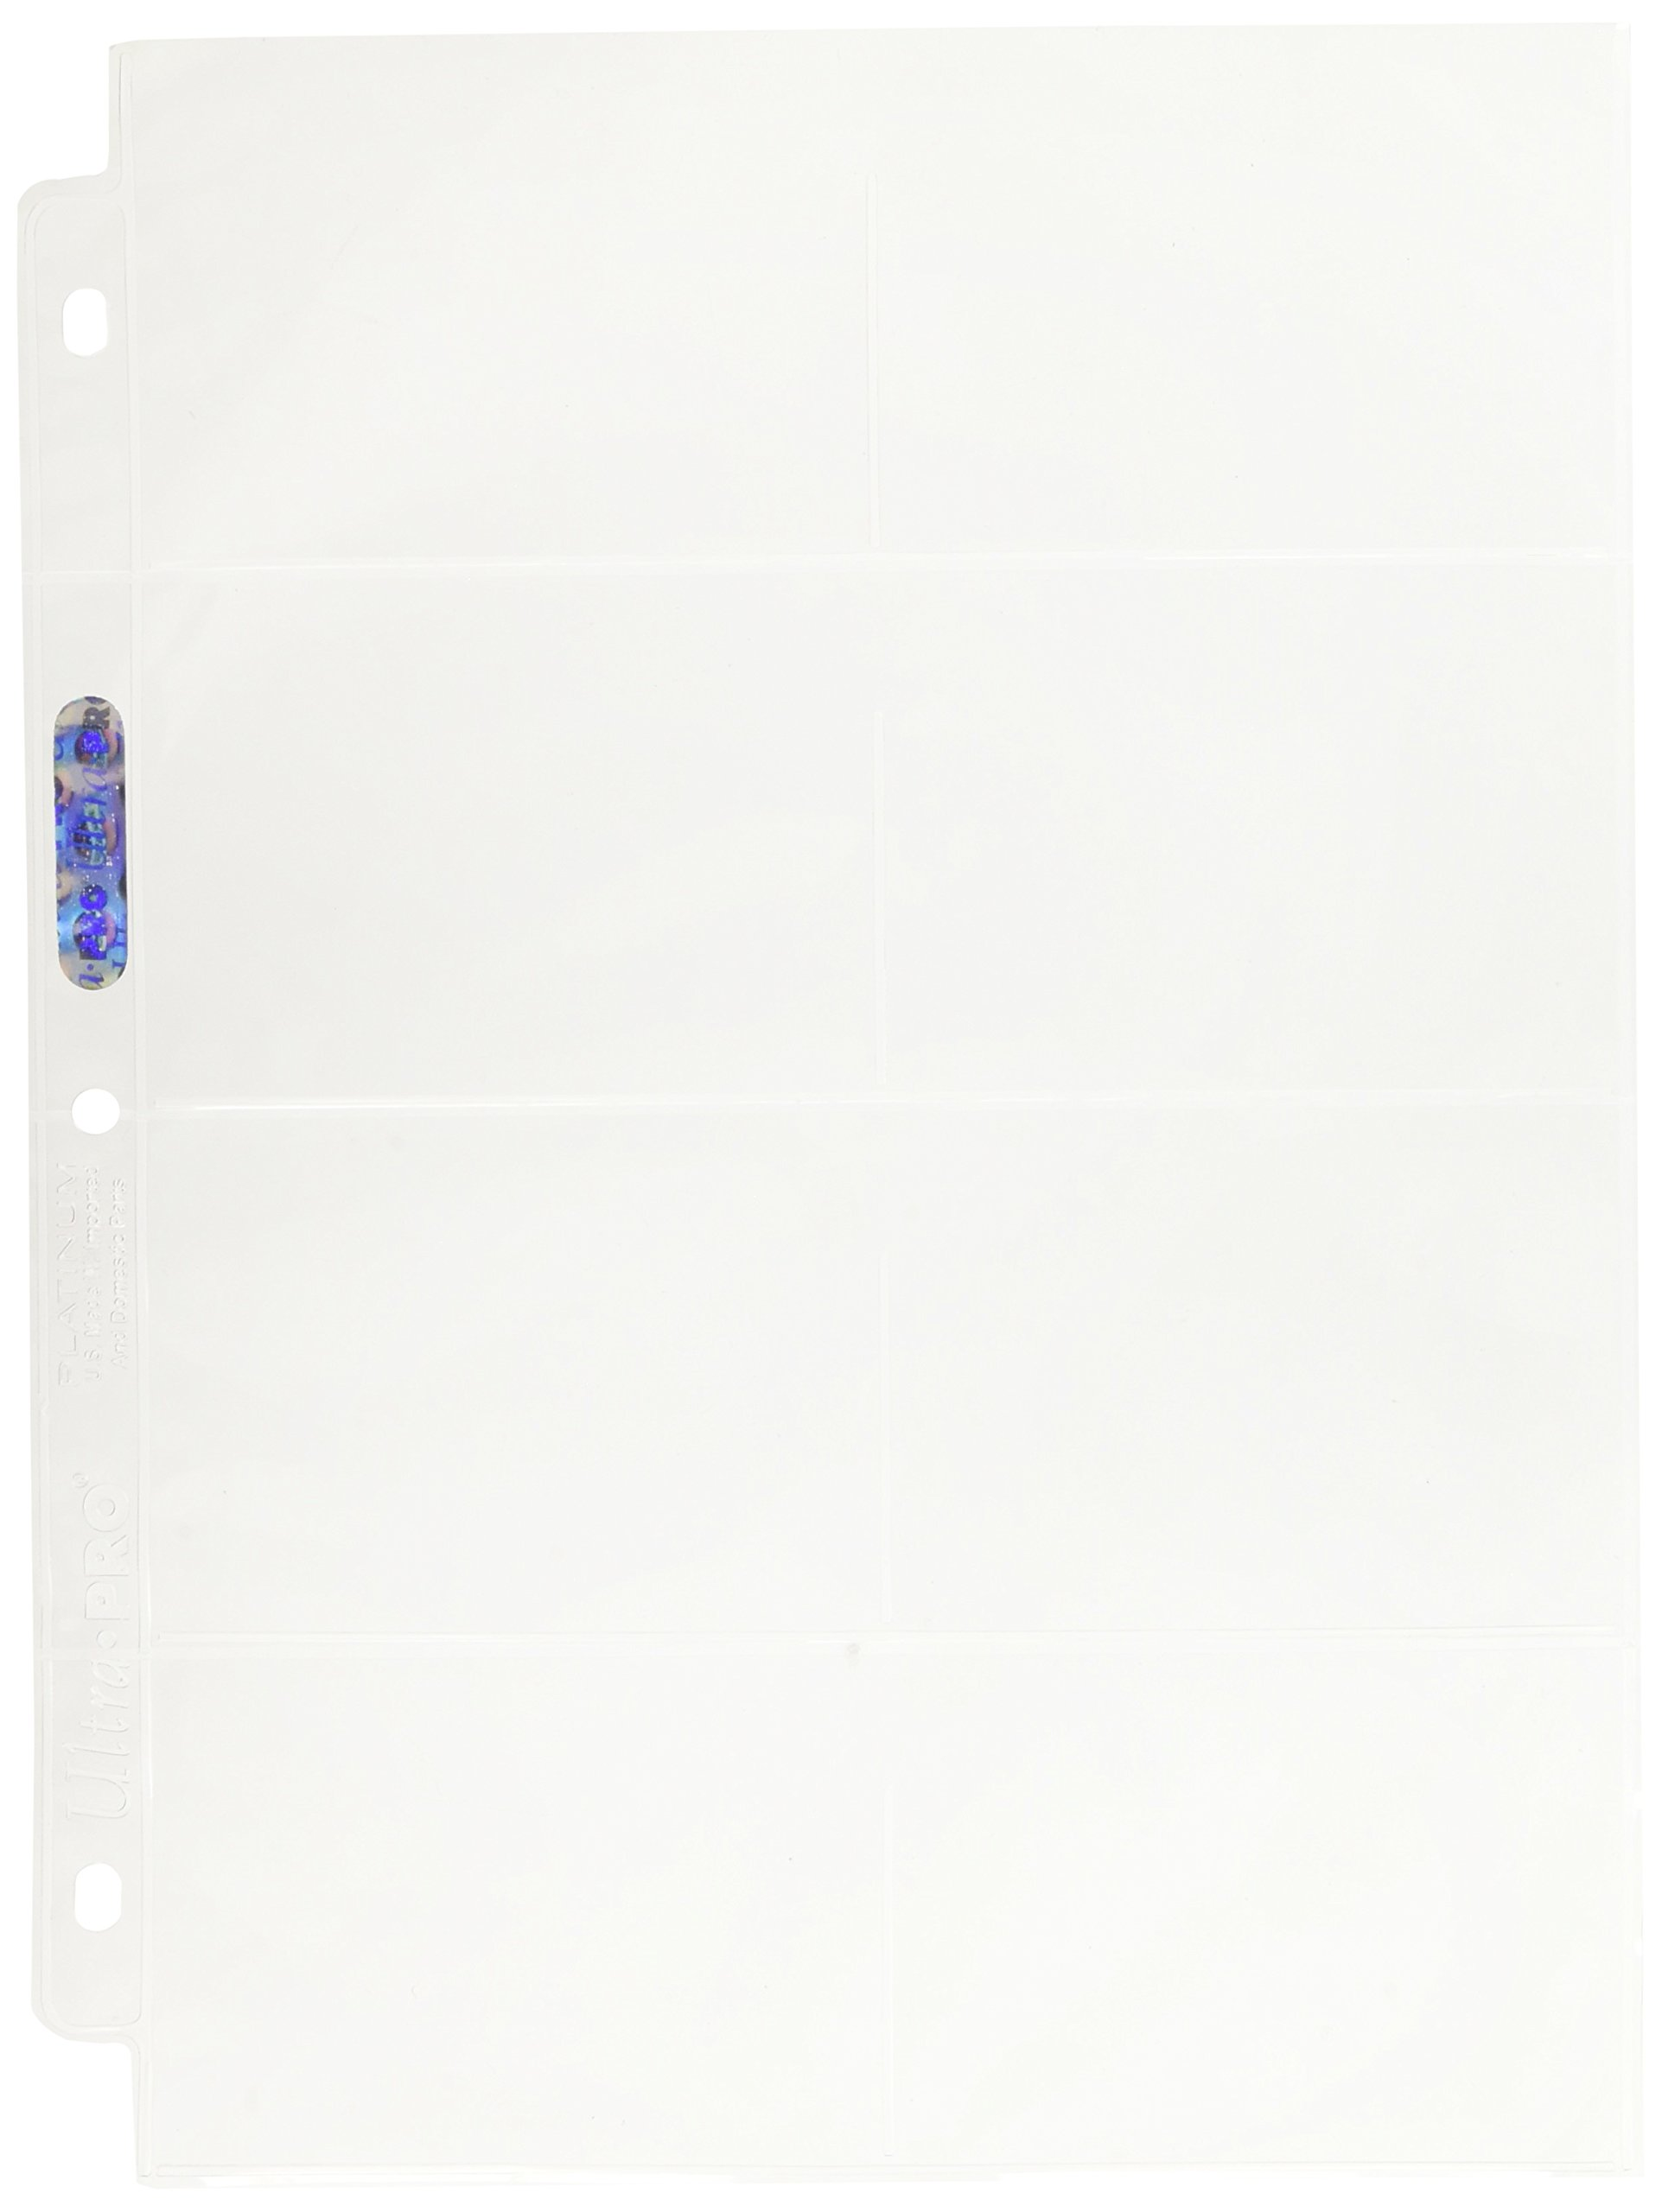 Ultra Pro 8-Pocket Platinum Page with 3-1/2'' X 2-3/4'' Pockets 100 ct.